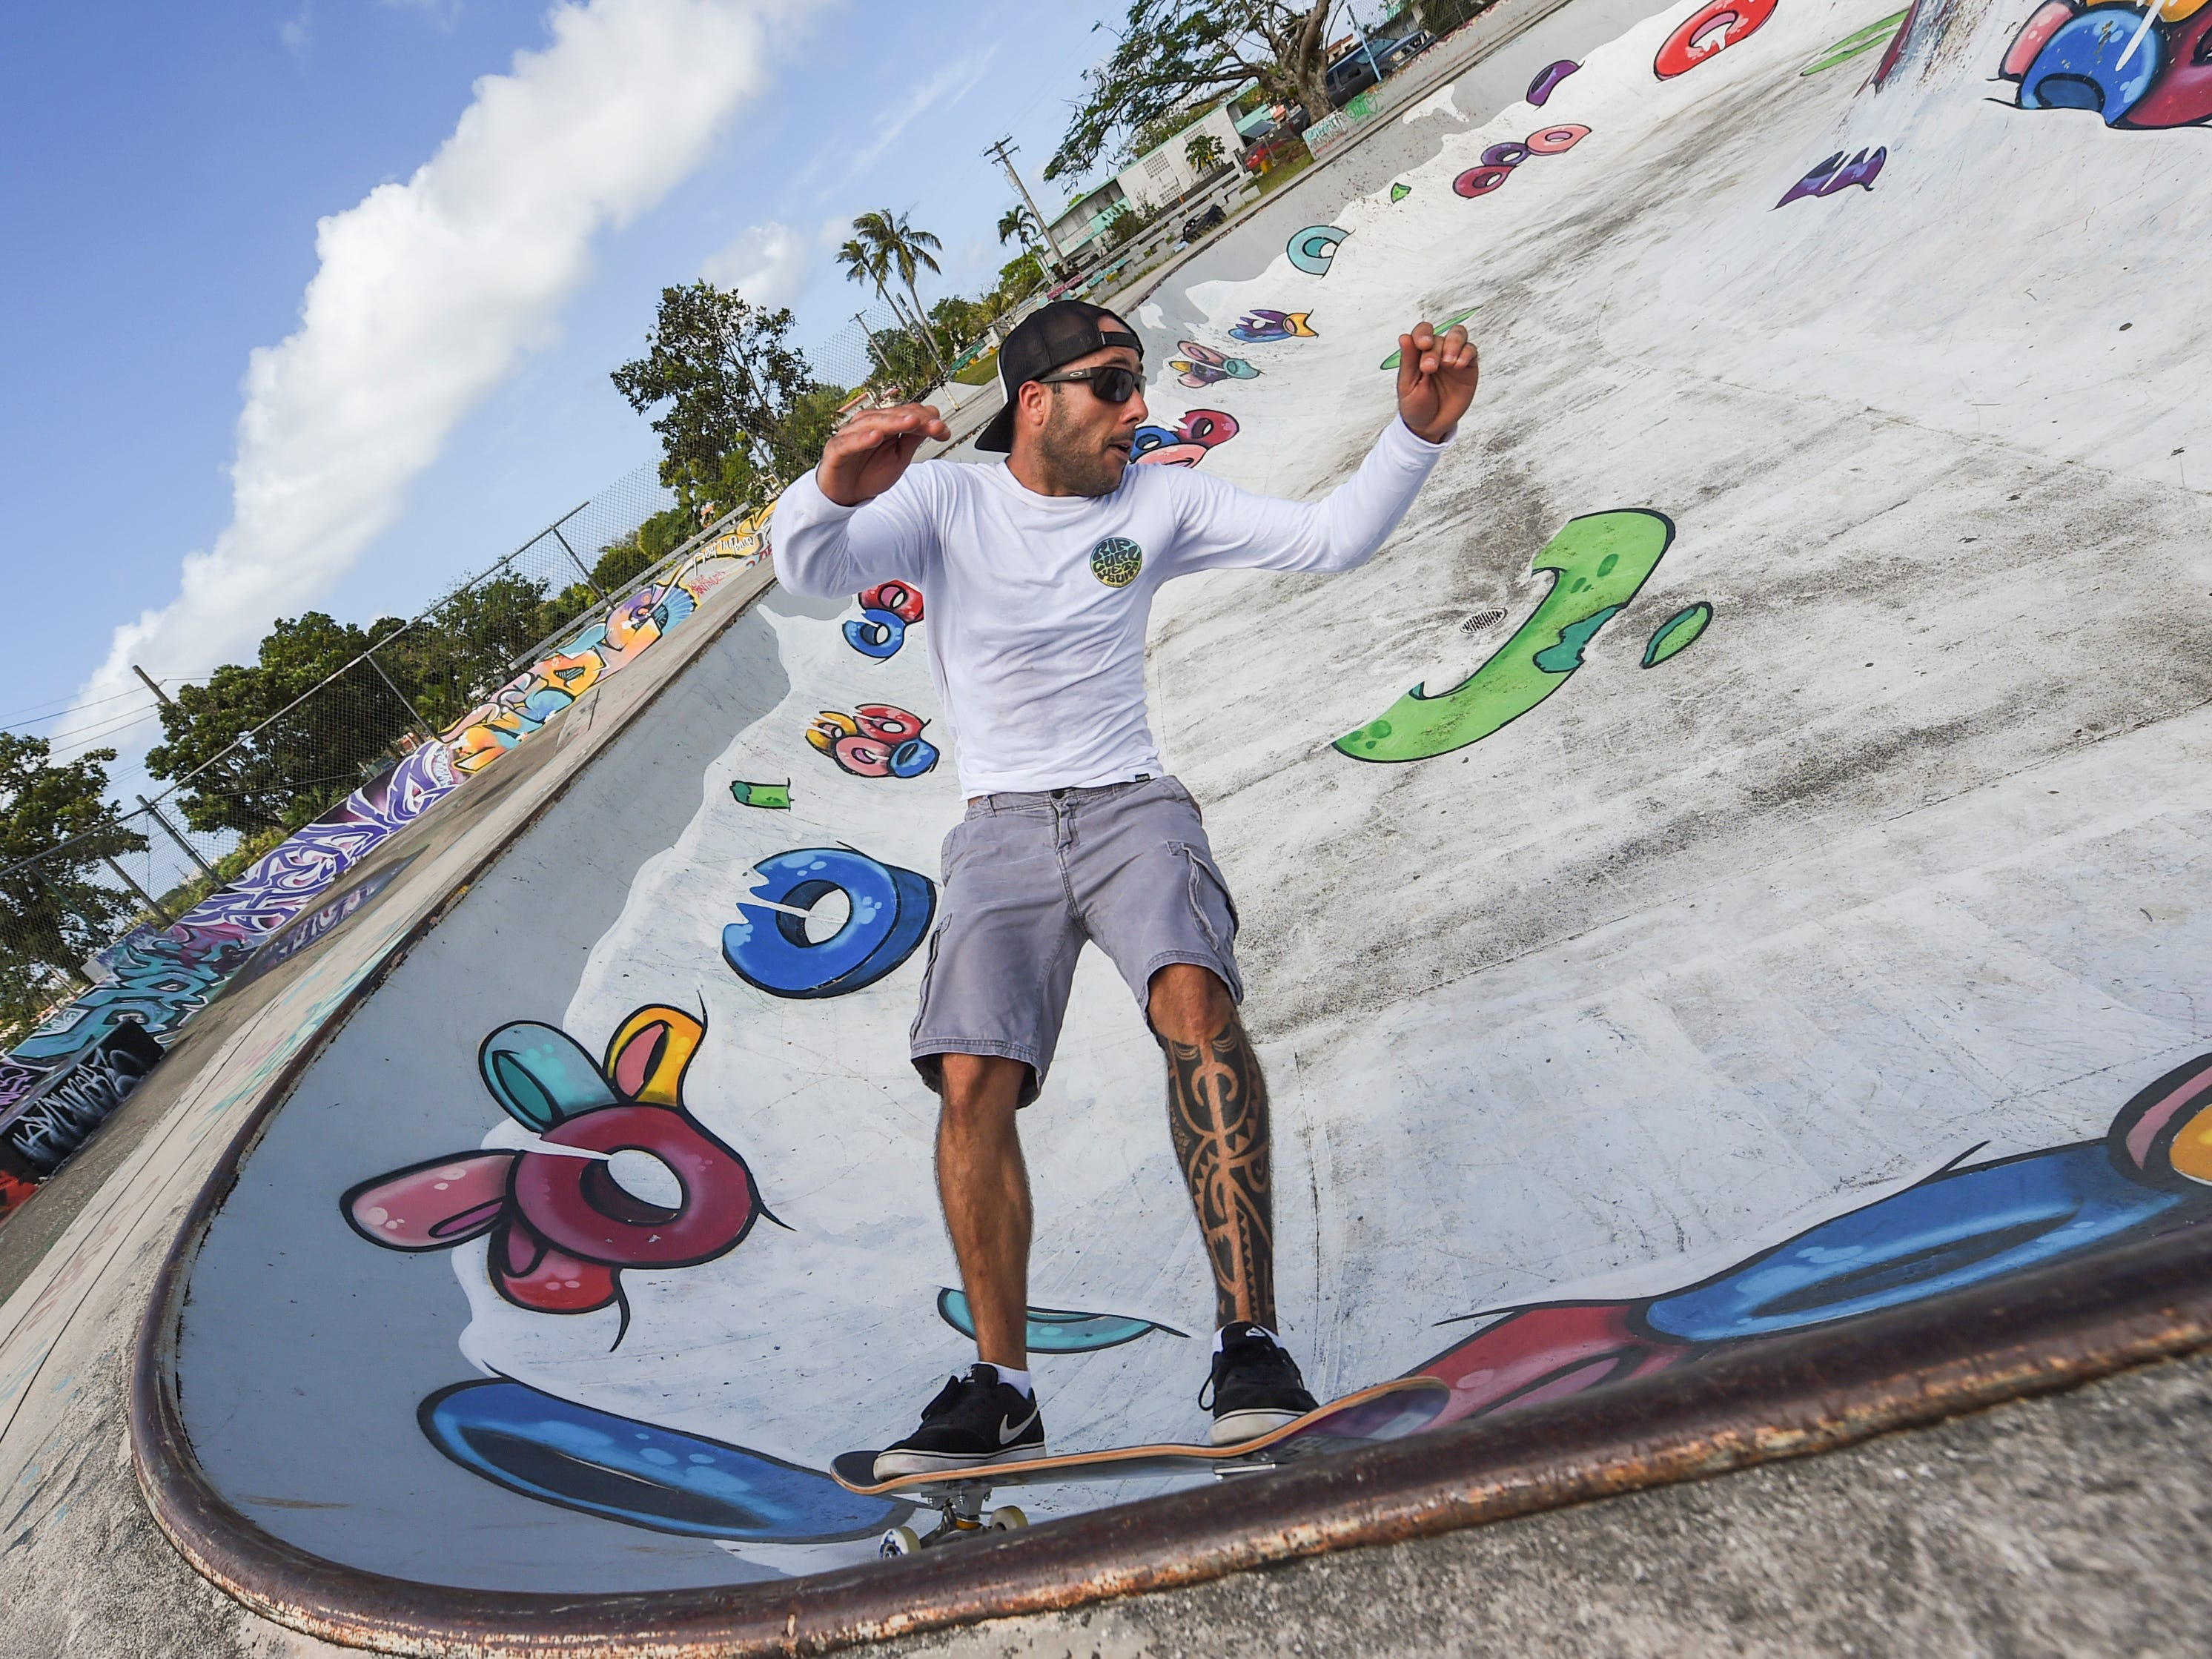 Vinnie Rodrigues rides a bowl at the Dededo Skatepark on Feb. 3, 2019.